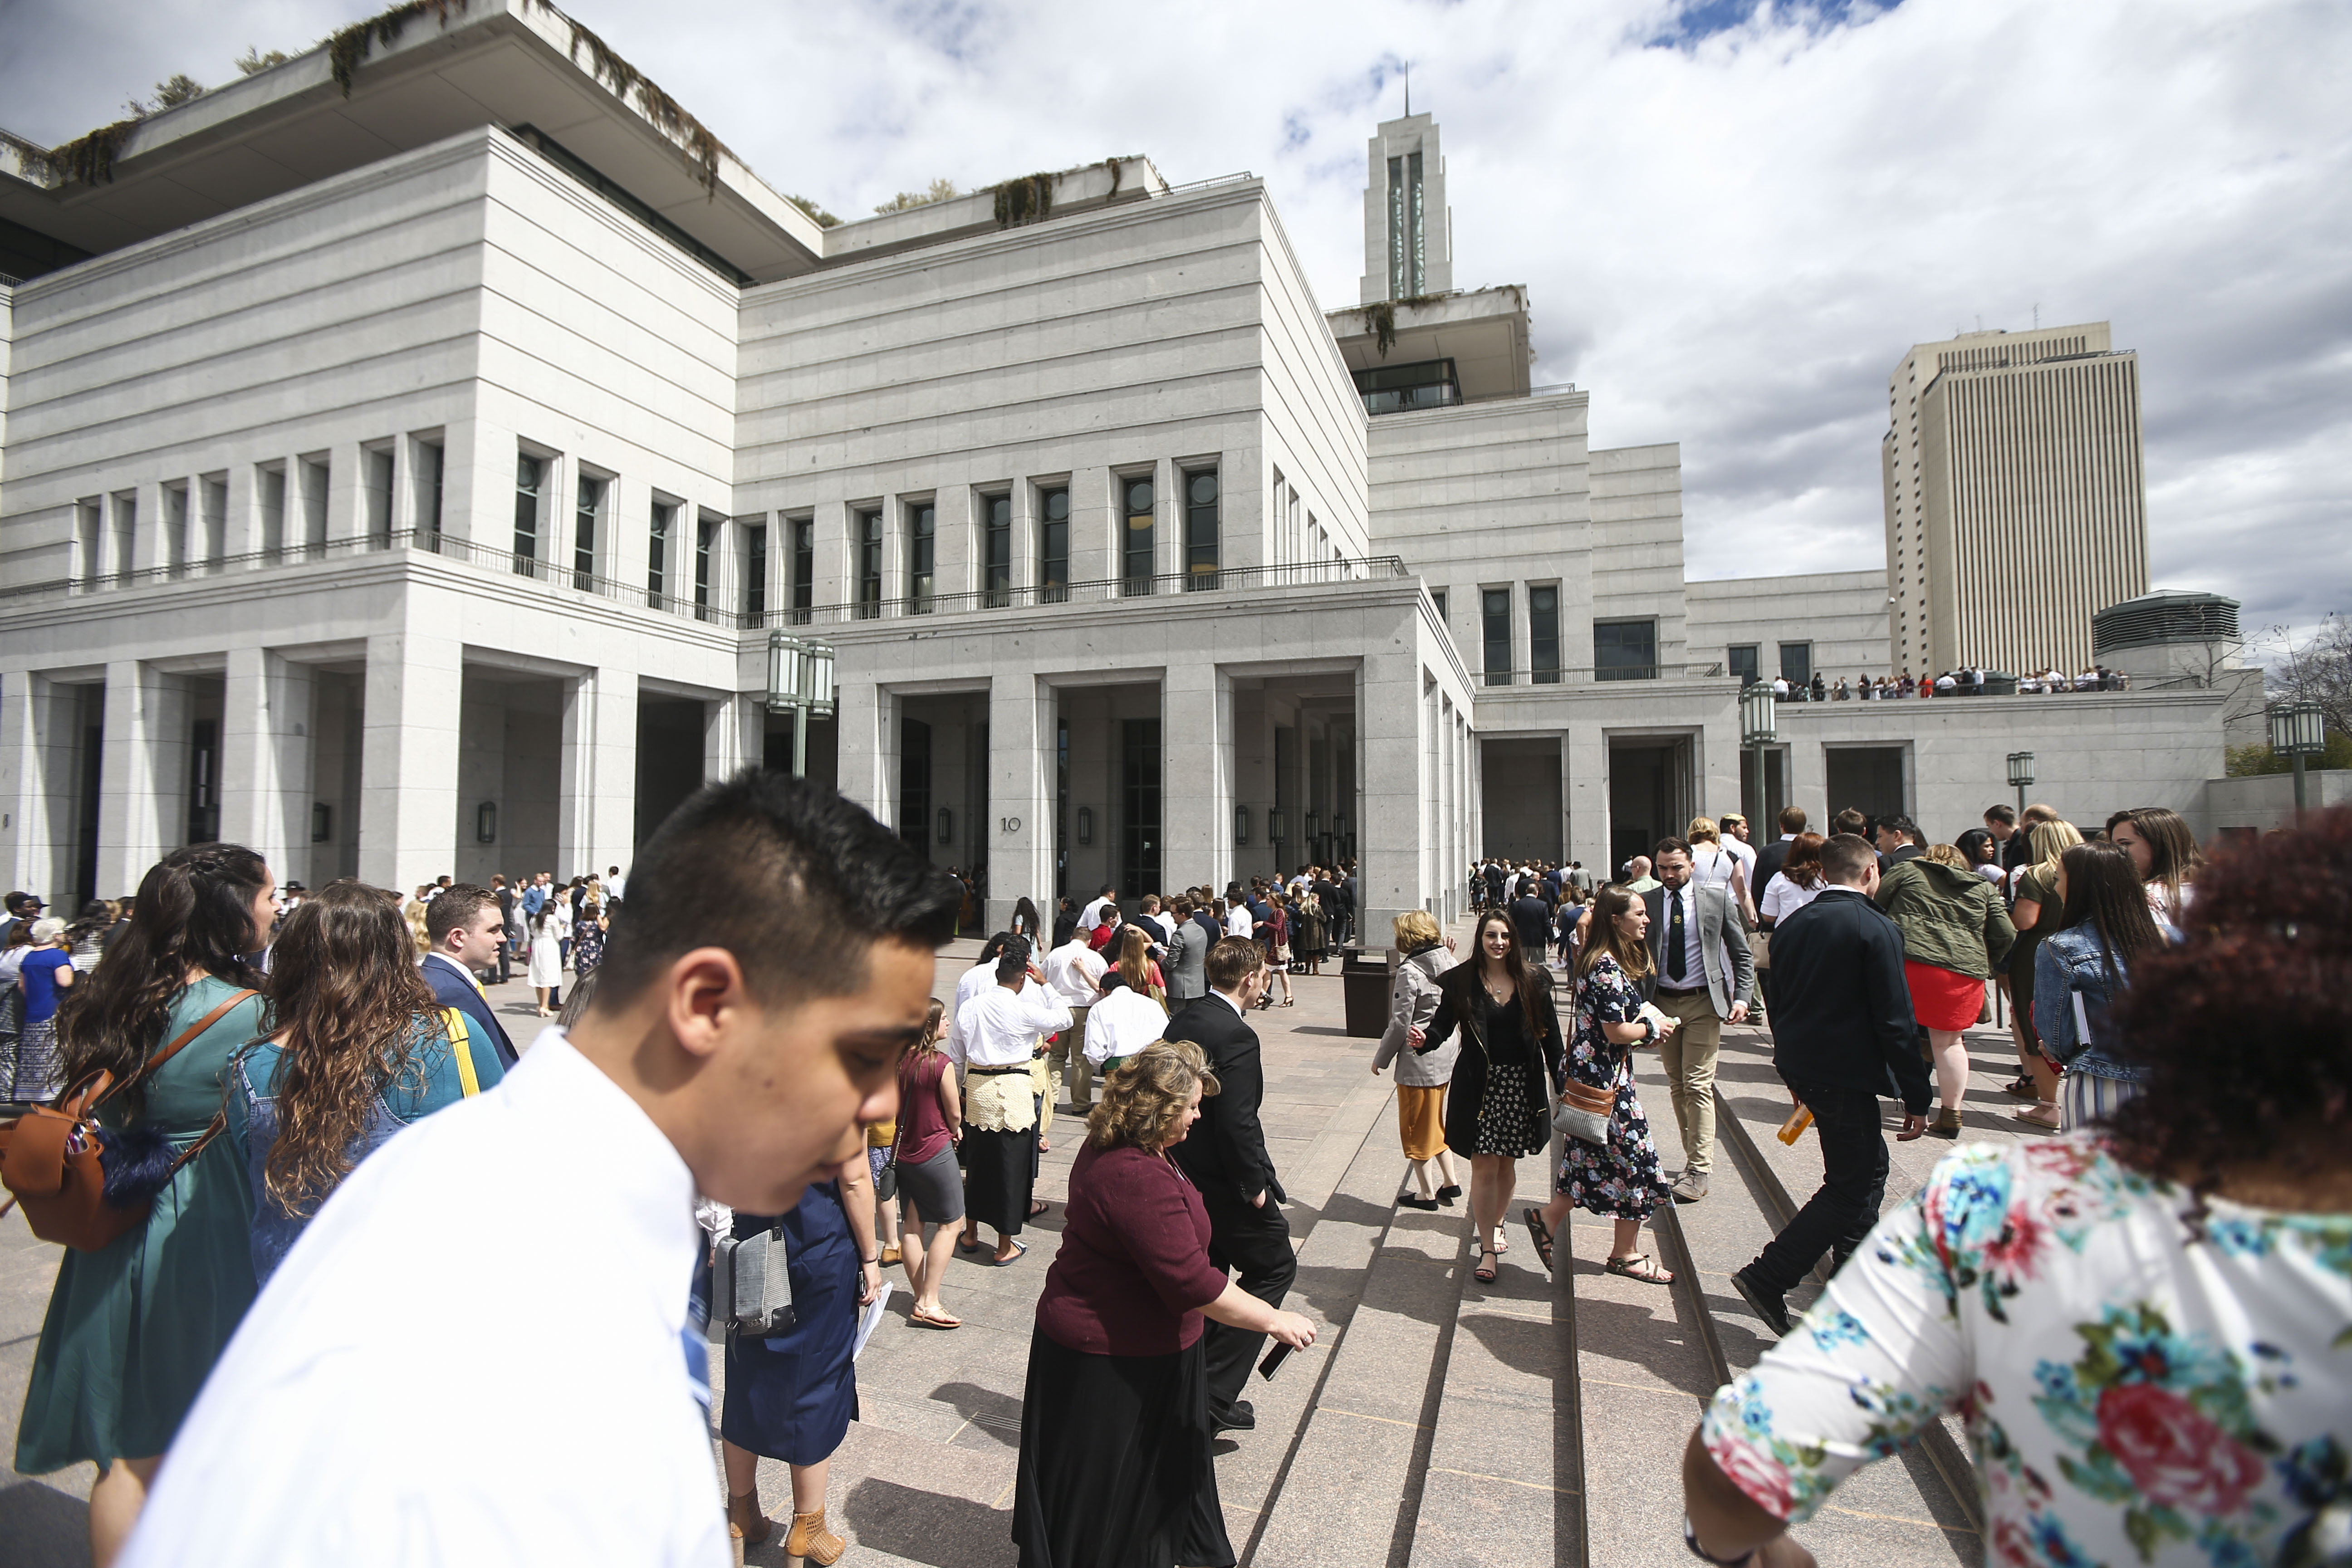 Conferencegoers walk to the Conference Center for the Sunday afternoon session of the 189th Annual General Conference of The Church of Jesus Christ of Latter-day Saints in Salt Lake City on Sunday, April 7, 2019.